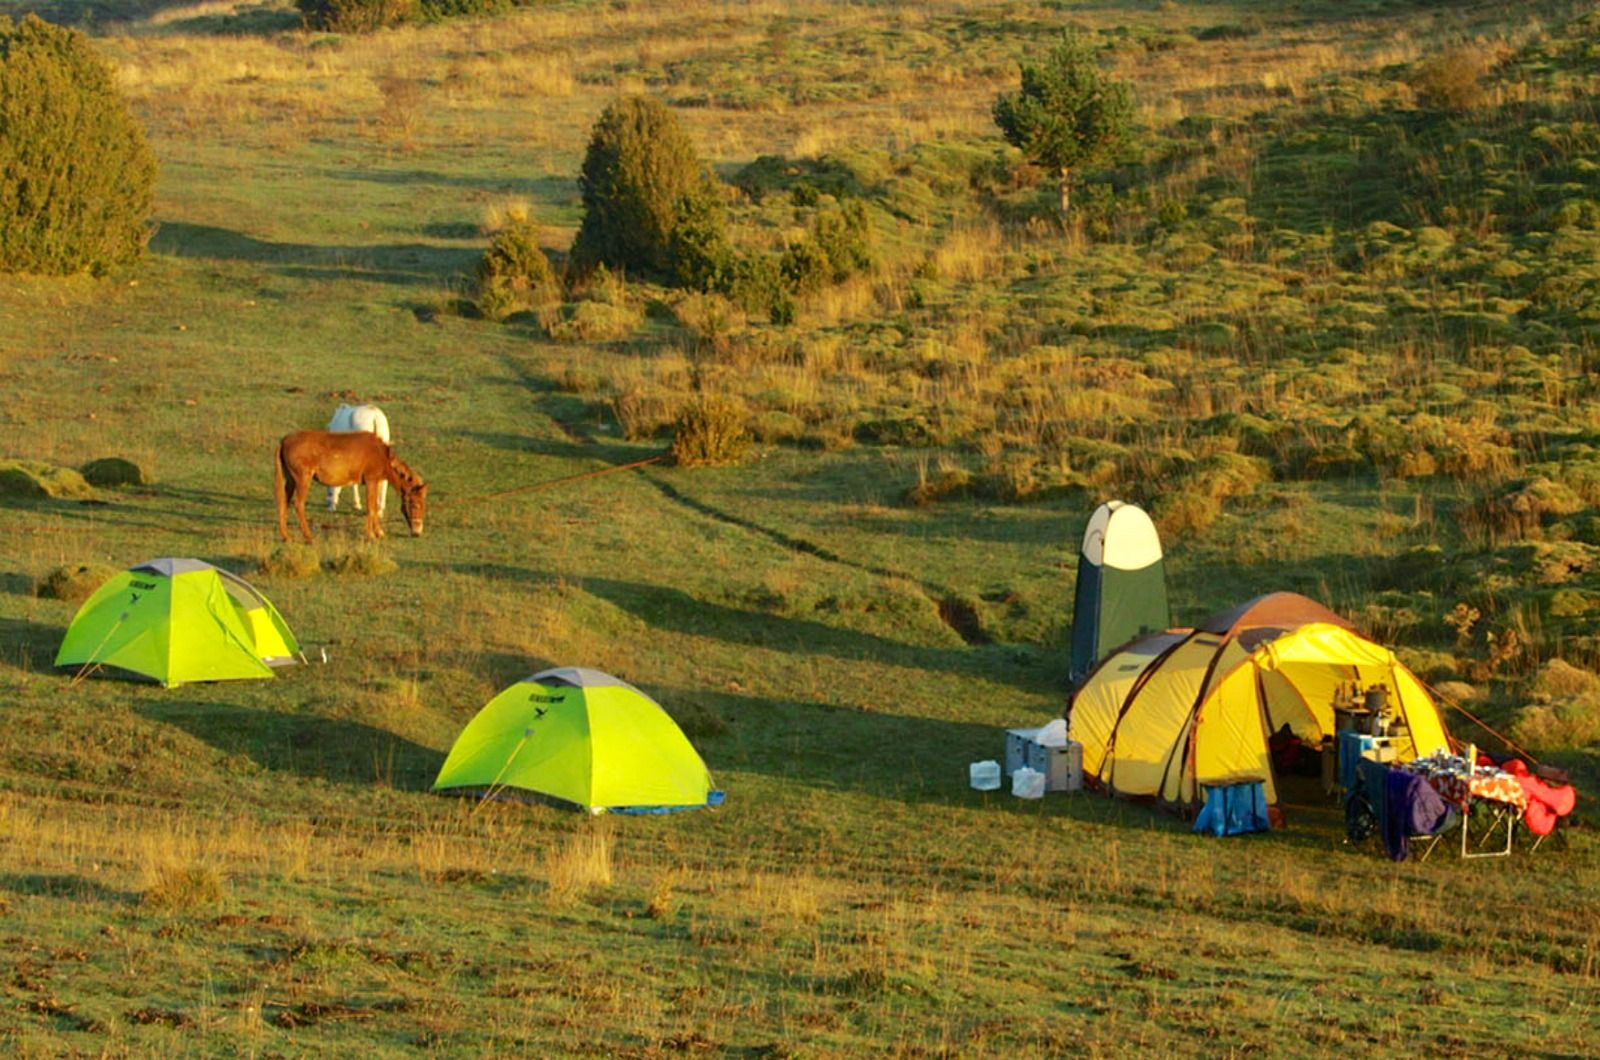 Our campsite at sunset in the Pyrenees on our one day excursion part of the Yoga Meditation Retreat Spain with Aragon Active